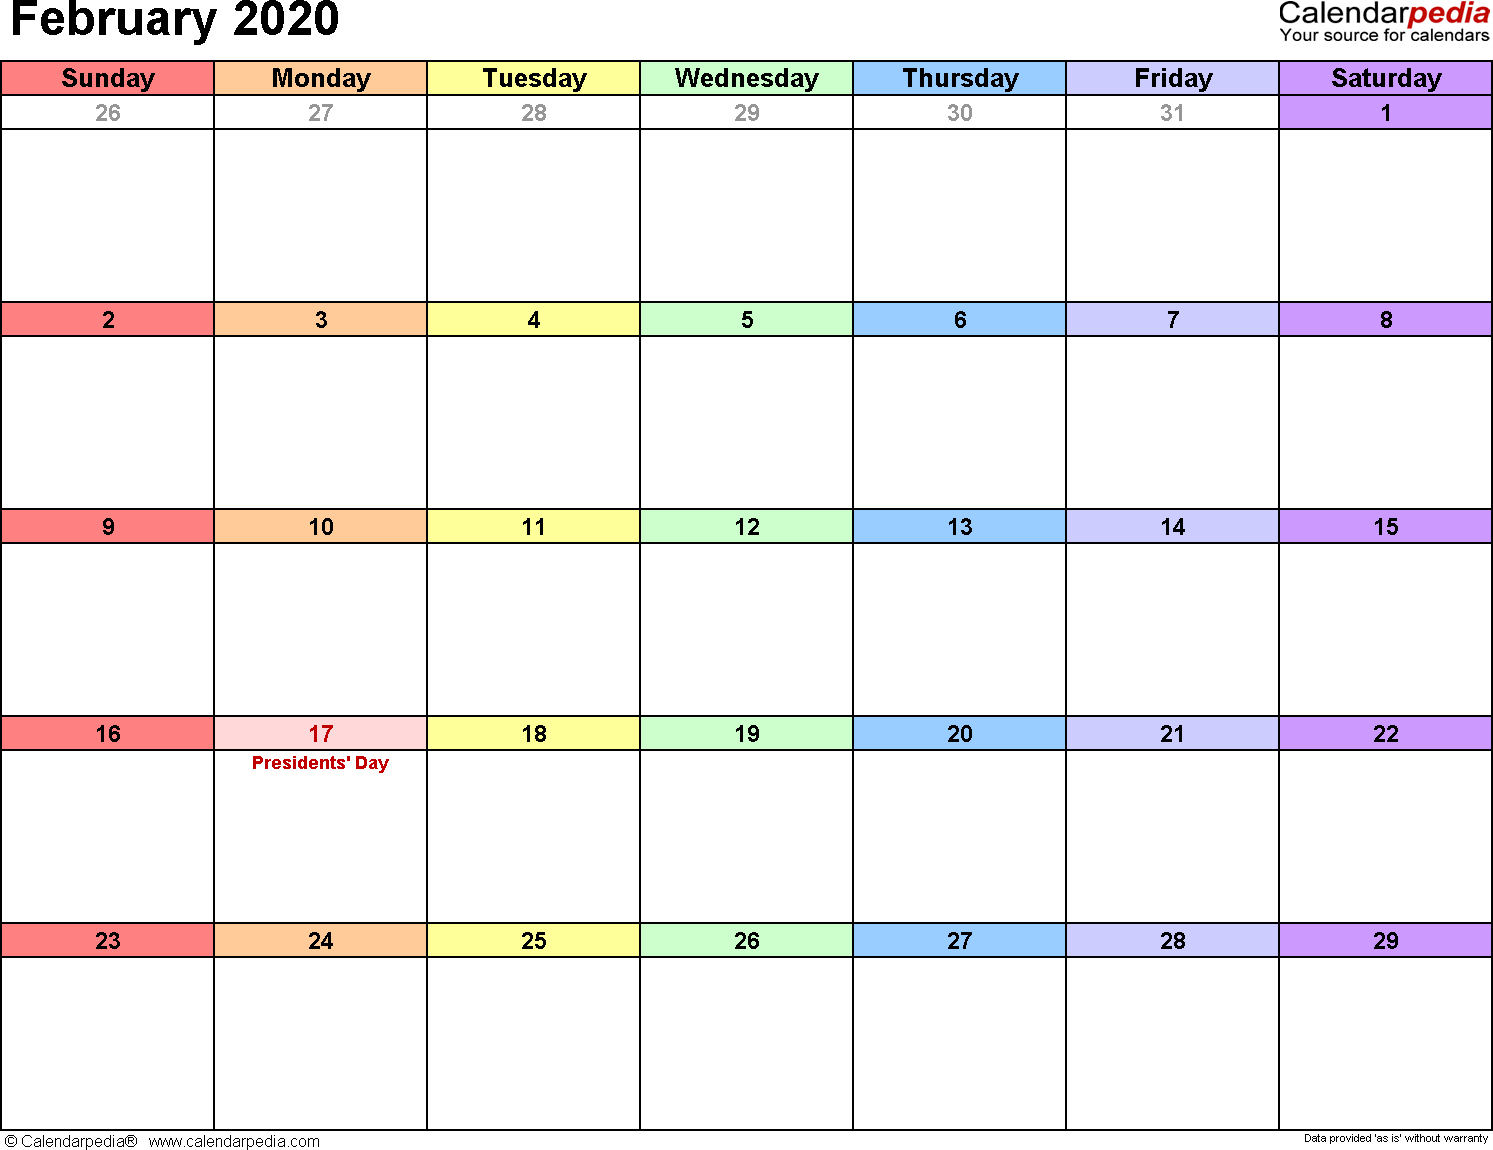 February 2020 Calendar Word Document February 2020 Calendars for Word, Excel & PDF